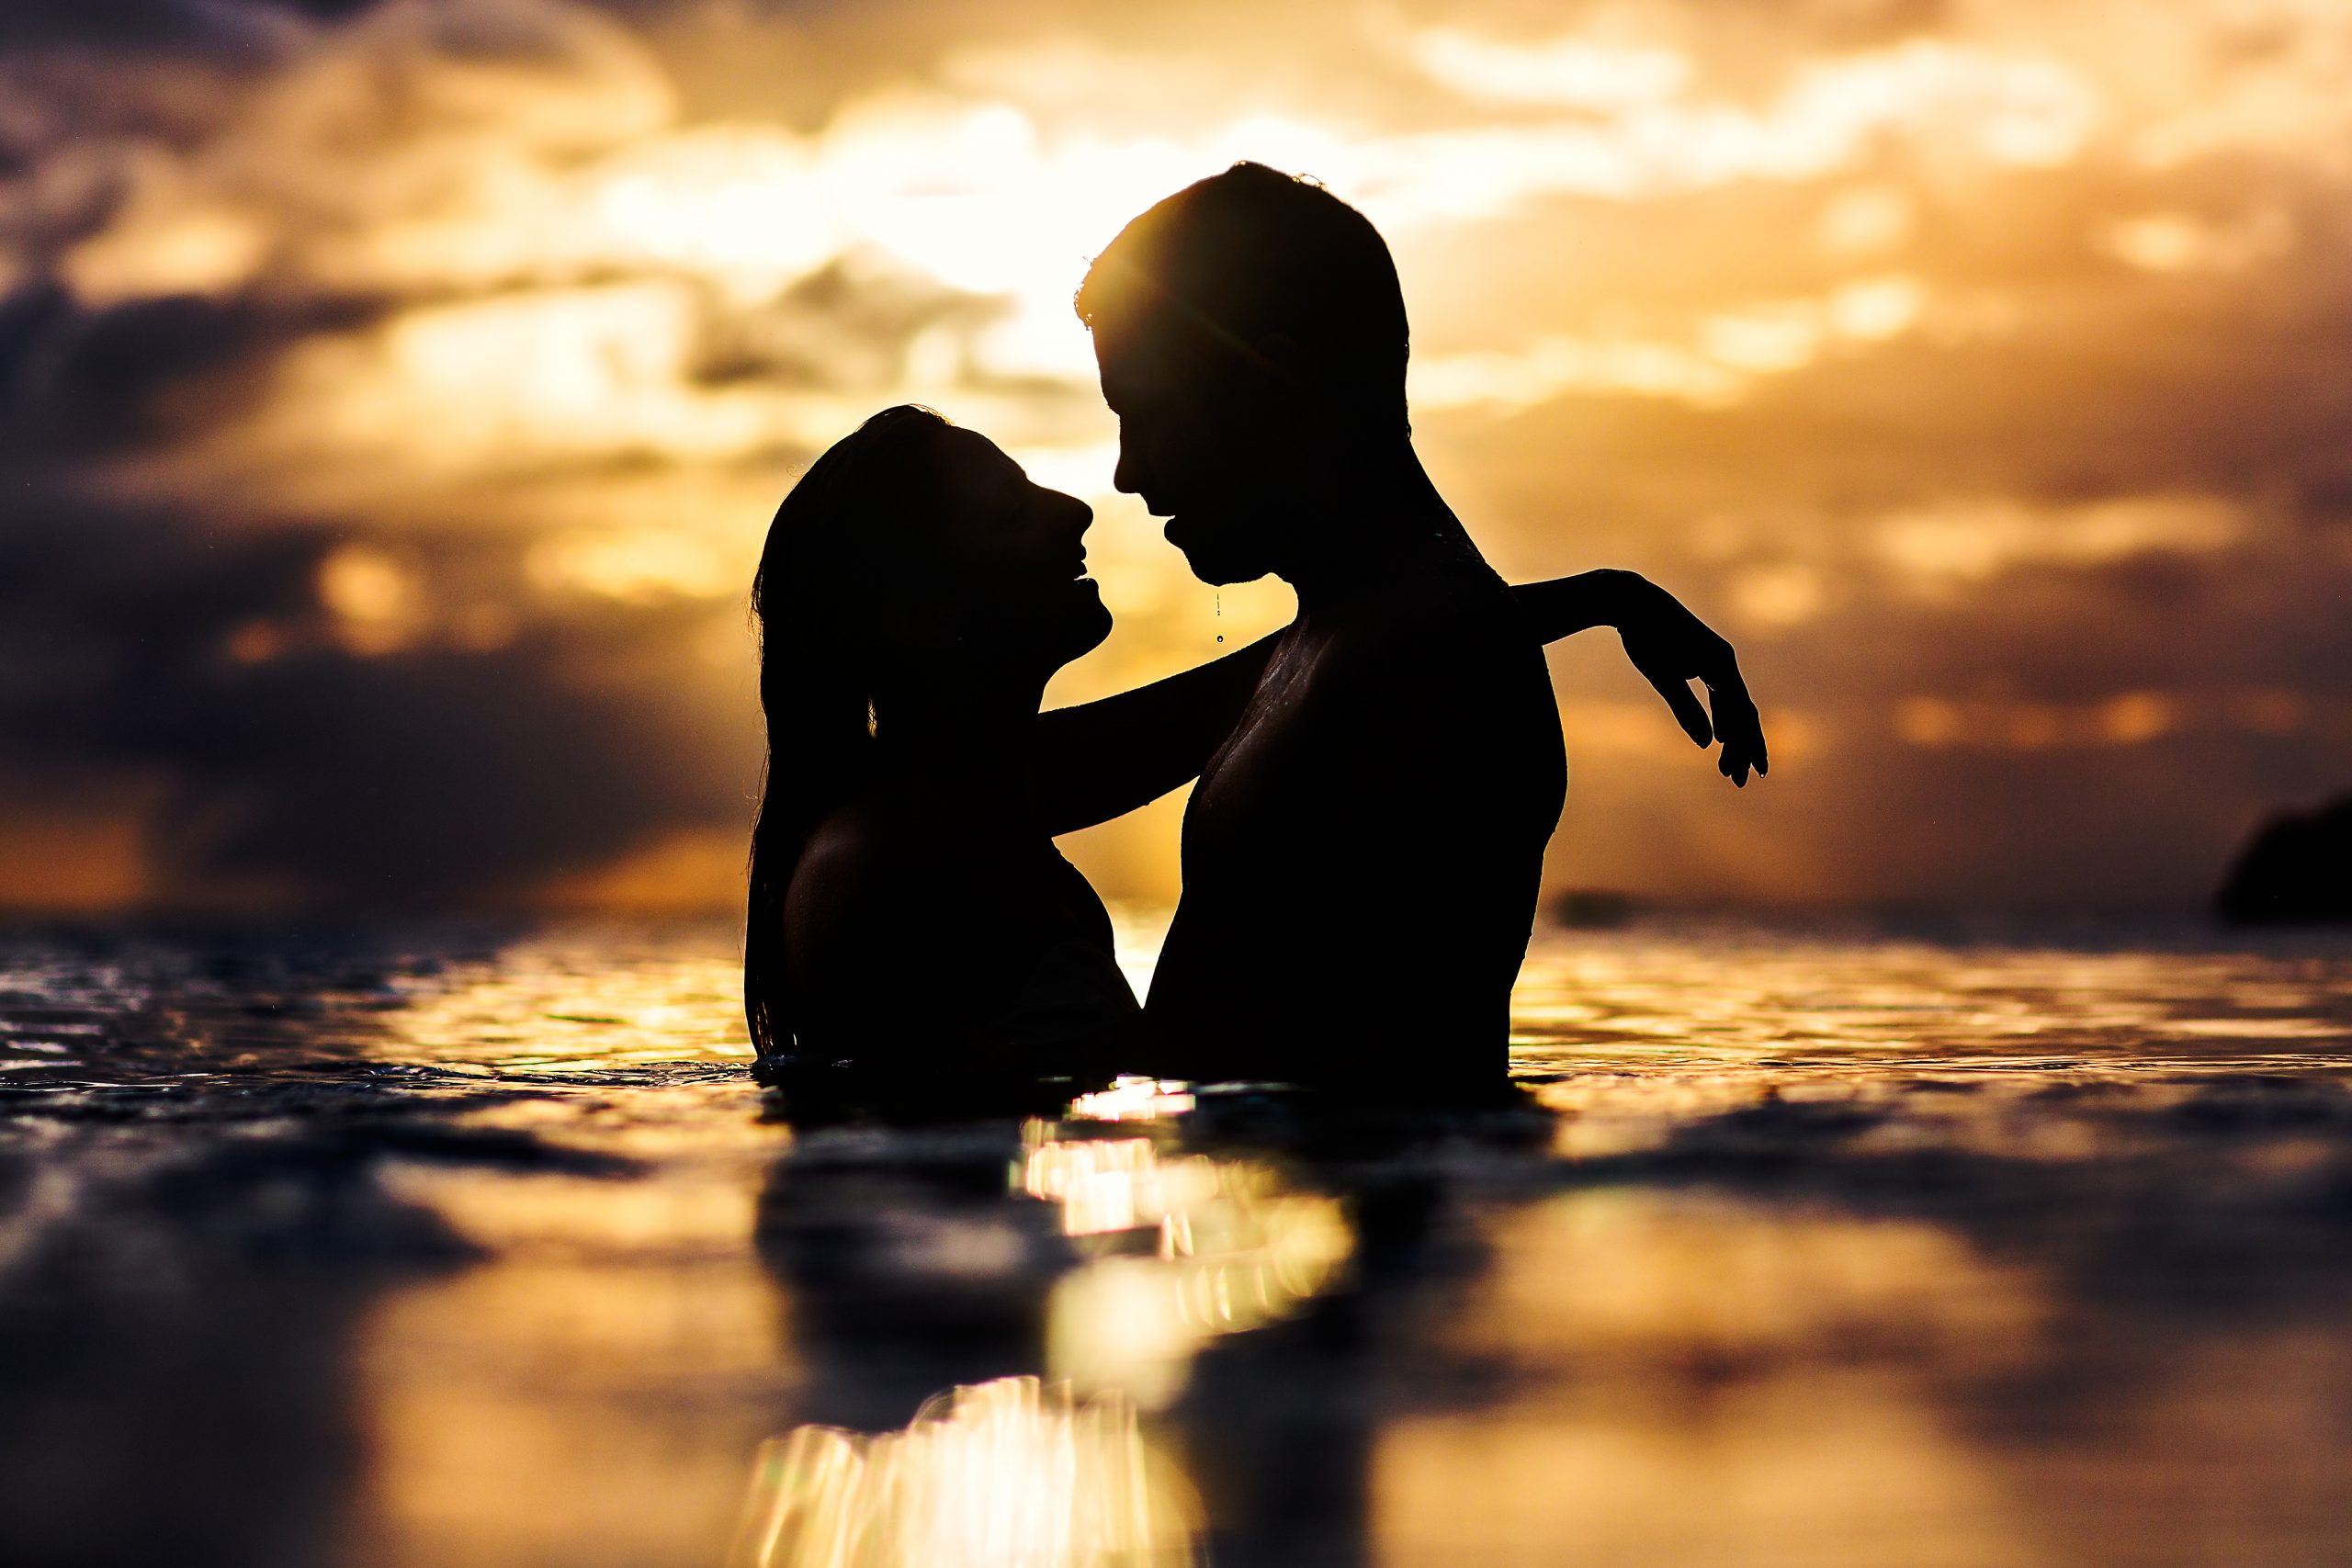 Silhouette of newlyweds looking at each other in seawater at sunset in St. Lucia